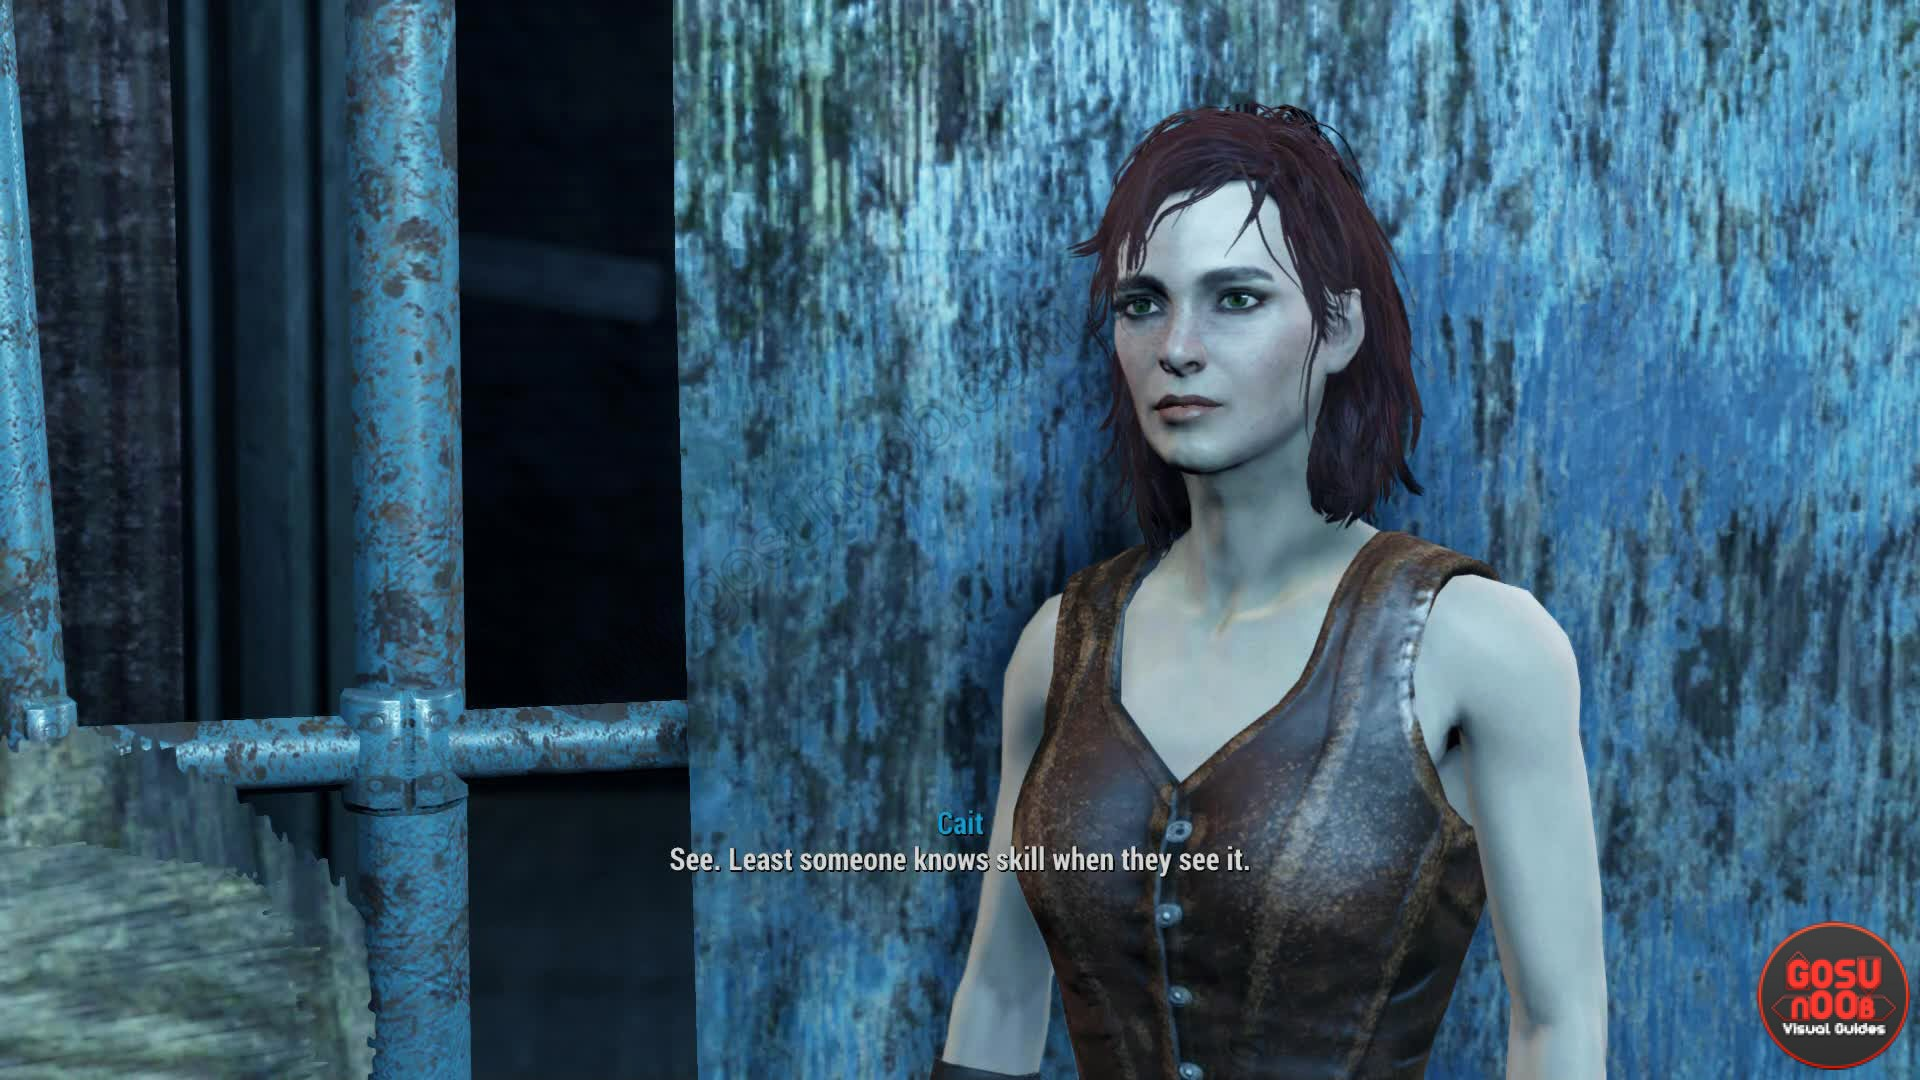 fallout 4 cait relationship with god